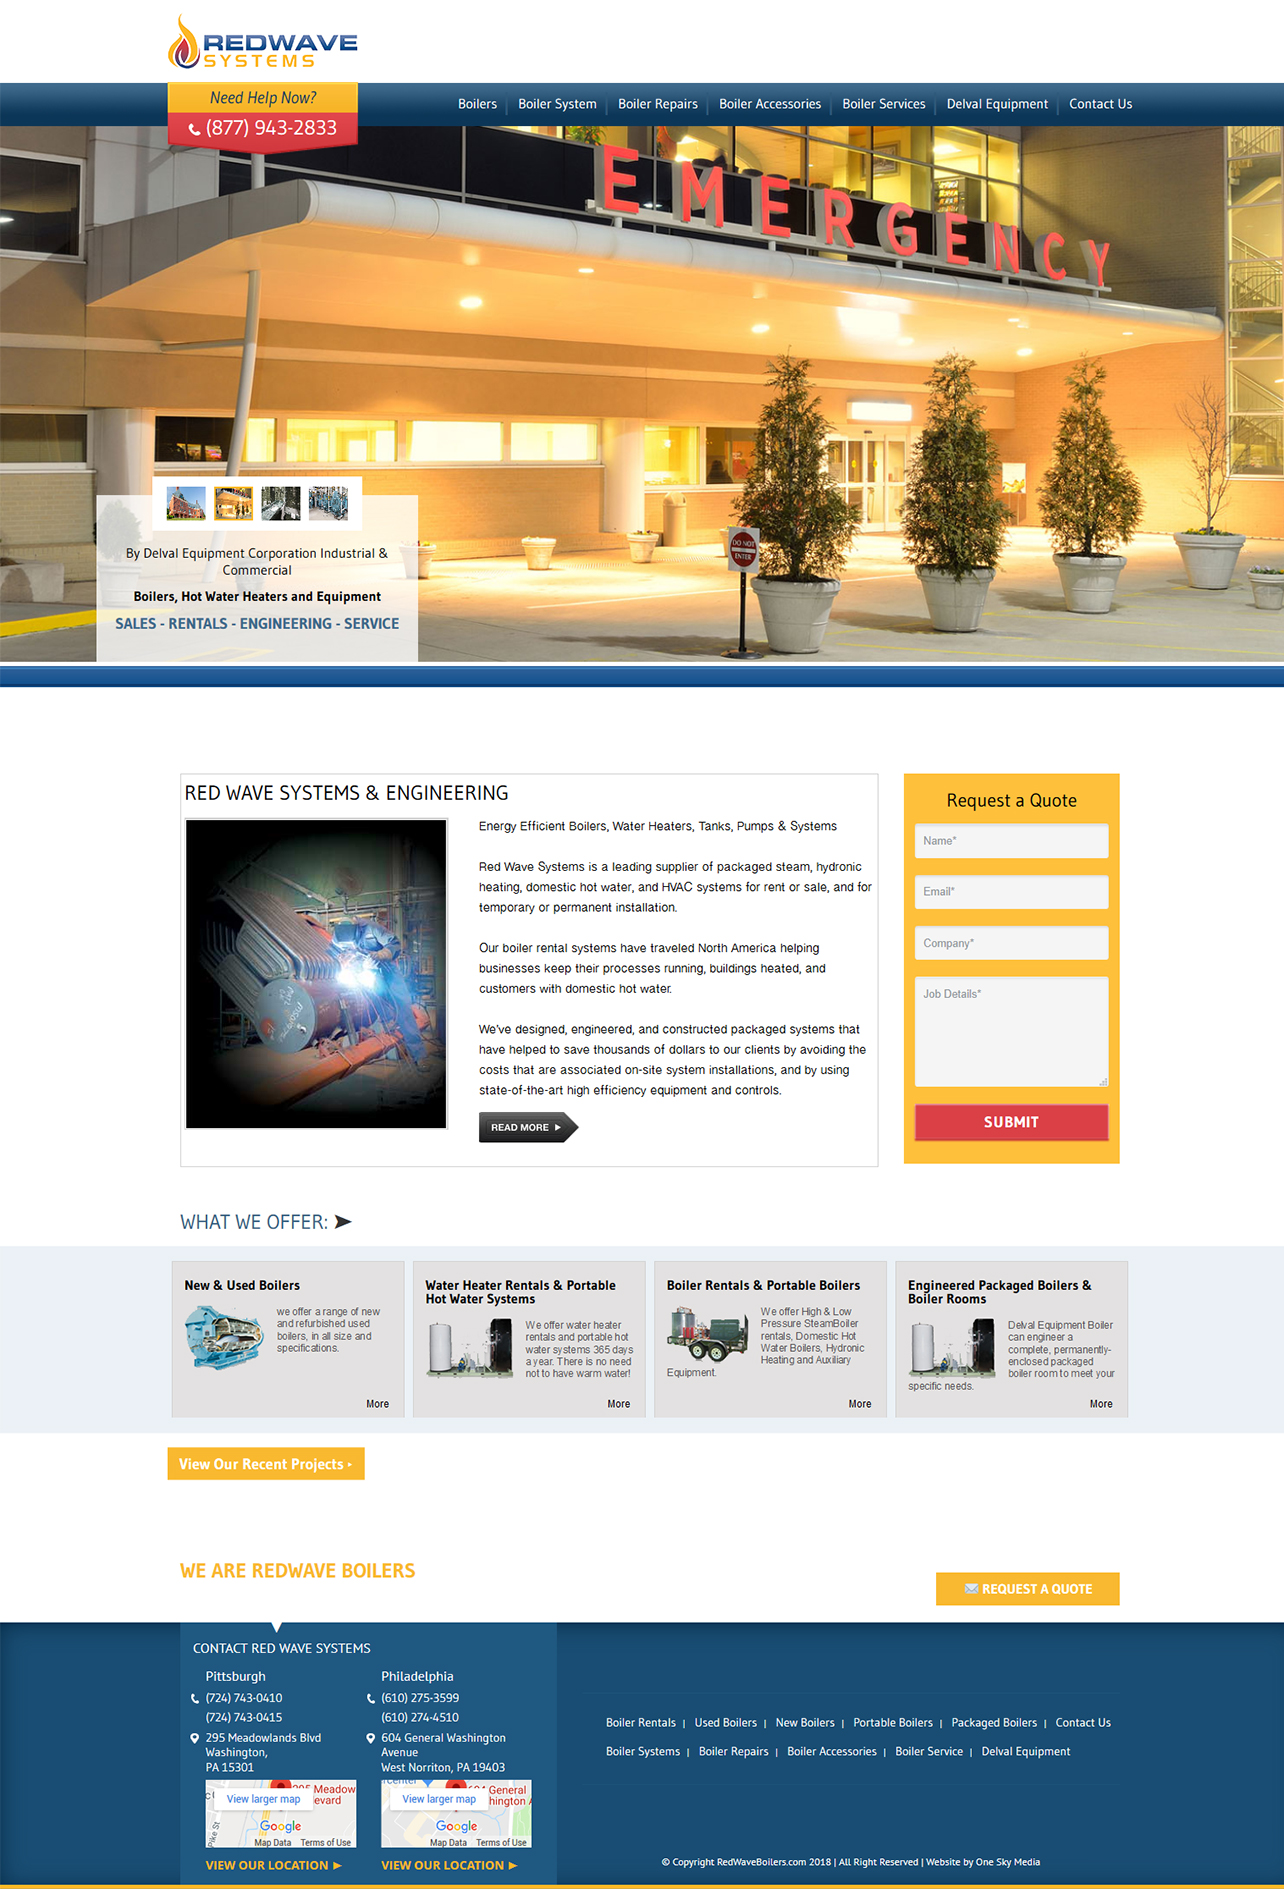 Redwave Systems Boiler Sales & Services website design